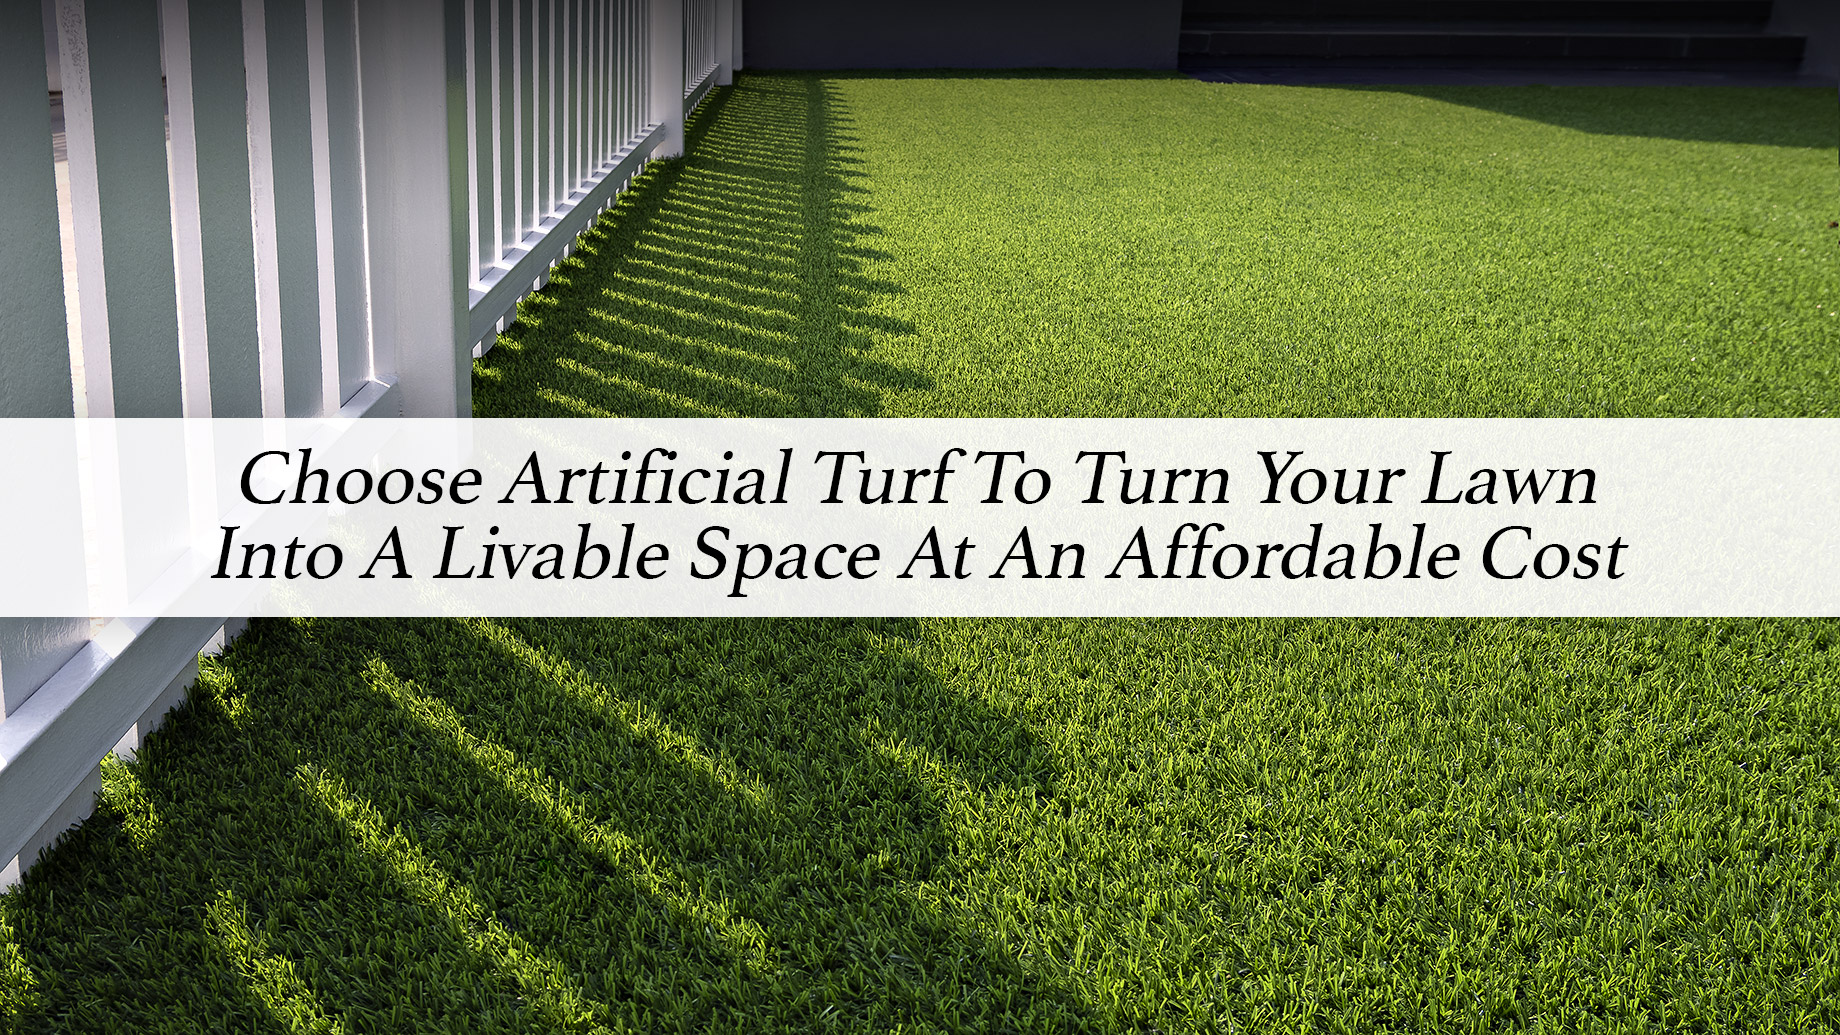 Choose Artificial Turf To Turn Your Lawn Into A Livable Space At An Affordable Cost